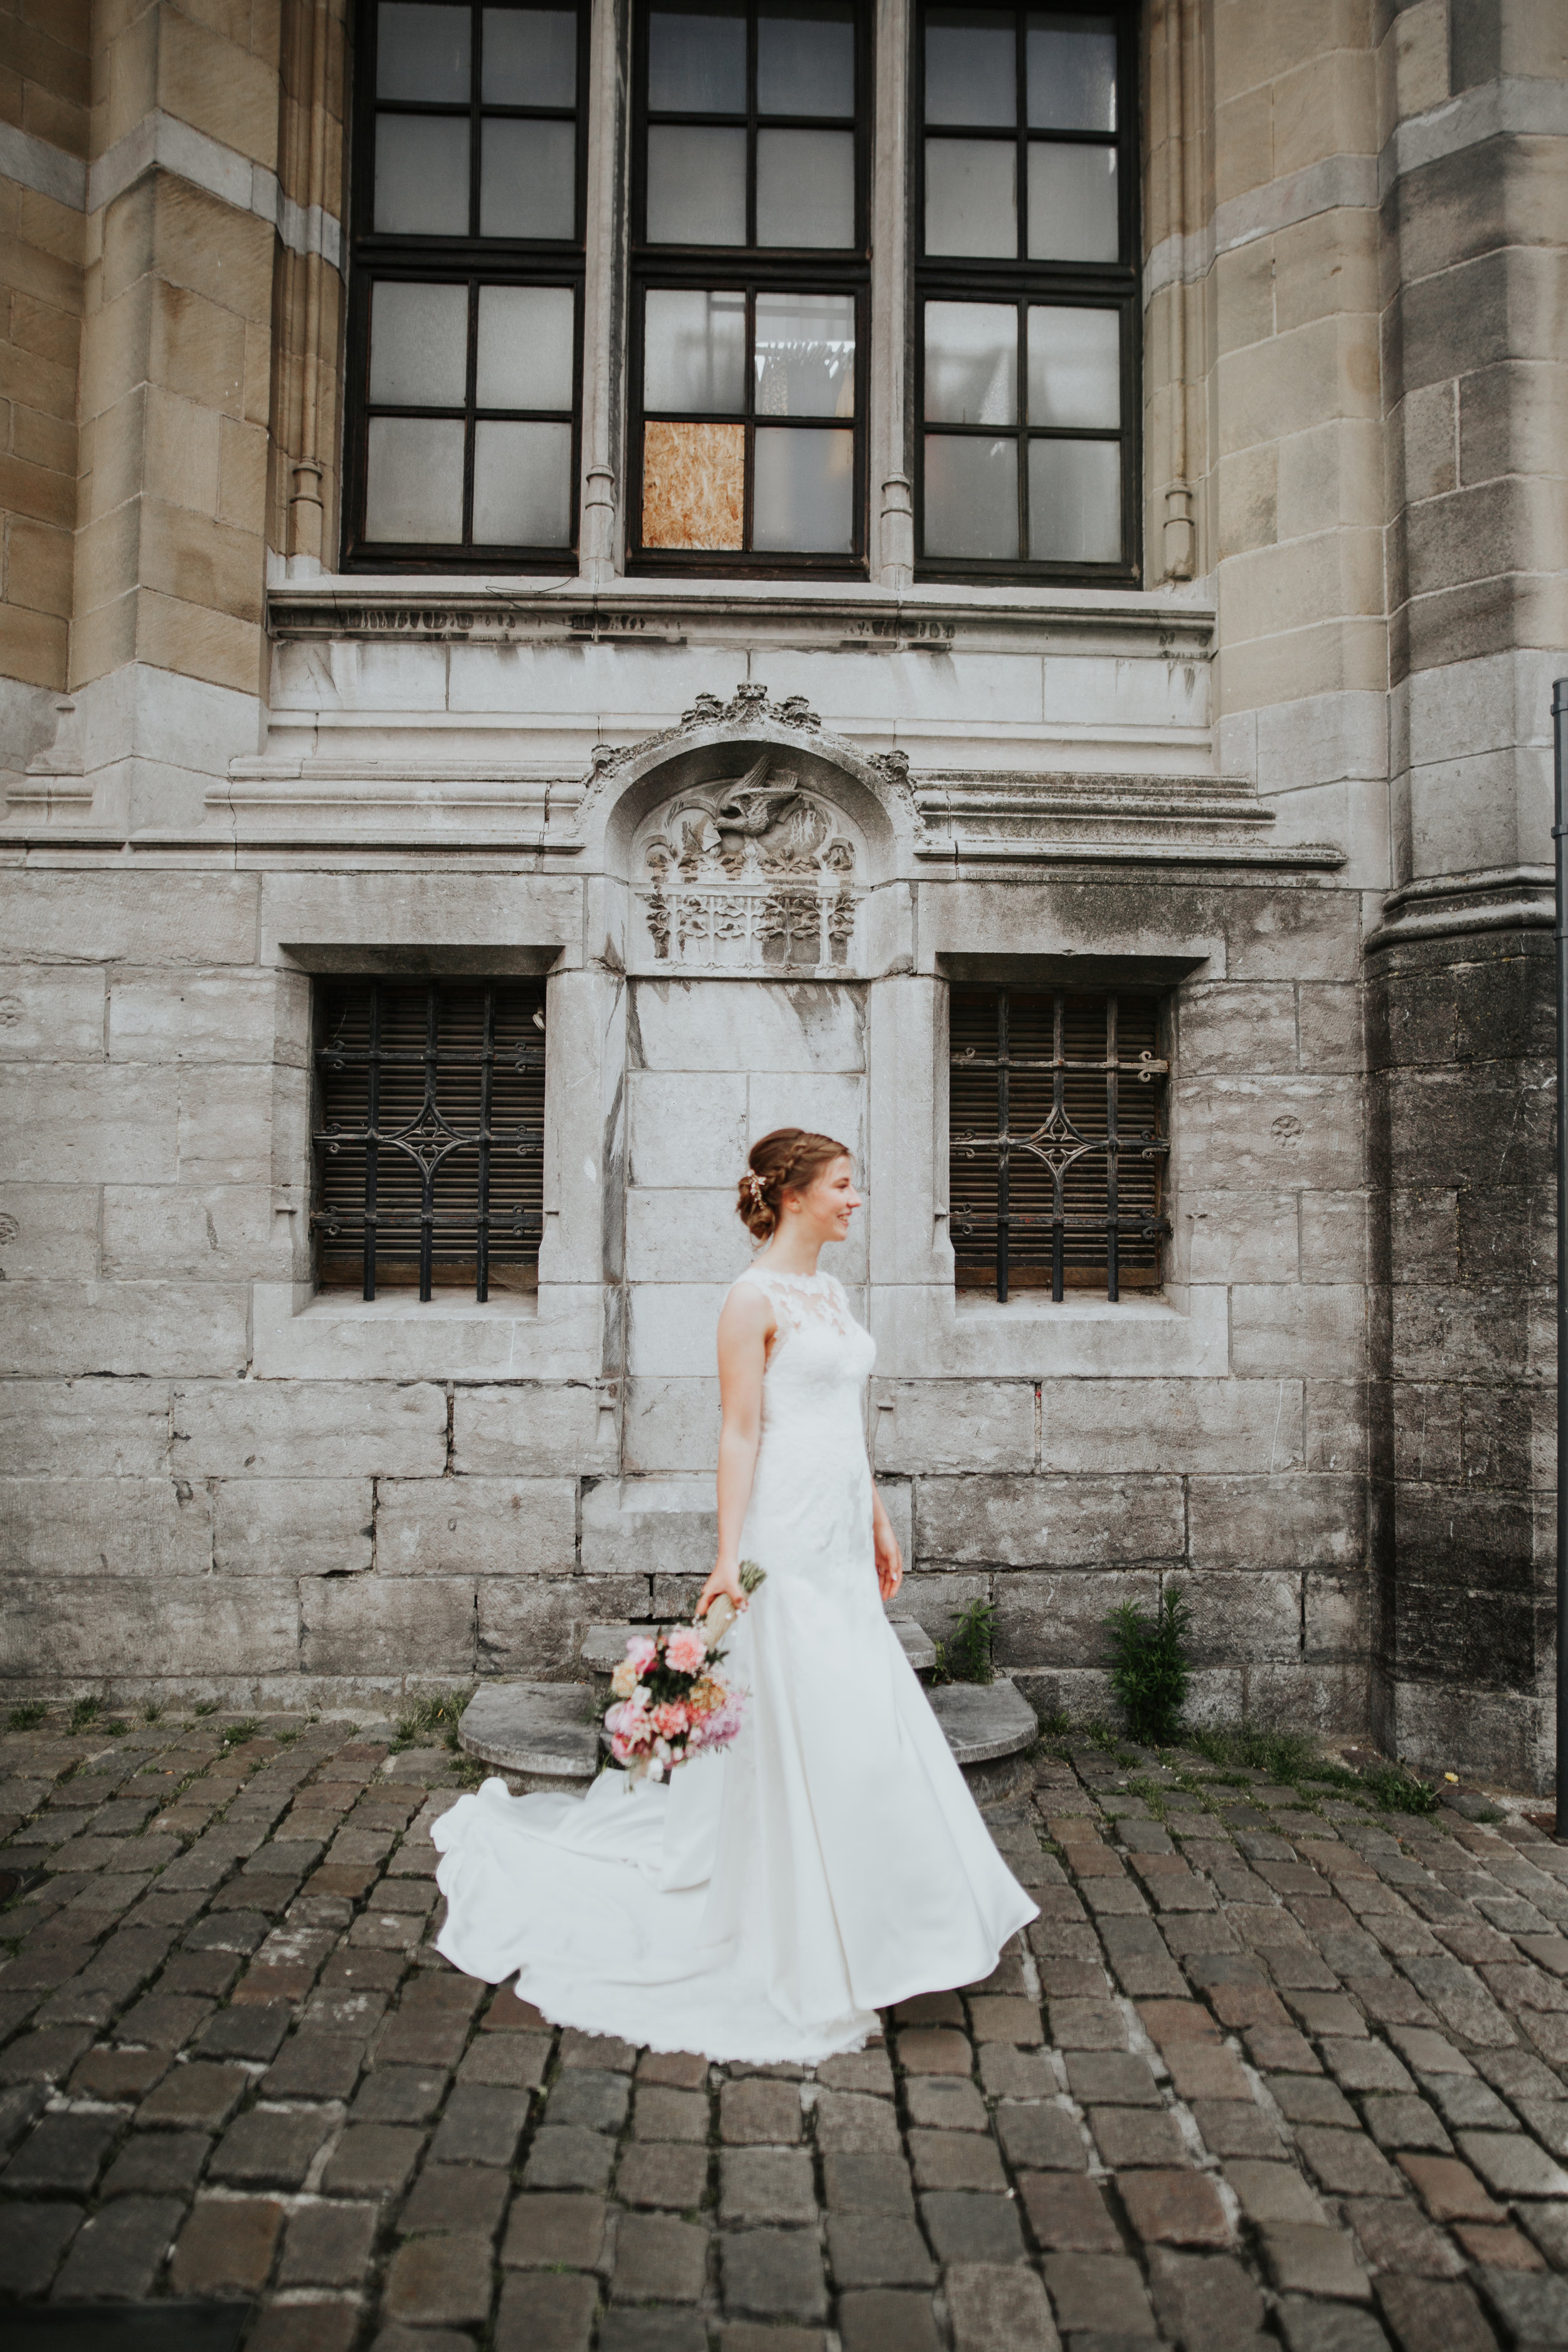 Bride smiling in windswept dress outside the old Post Office building in Ghent, Belgium